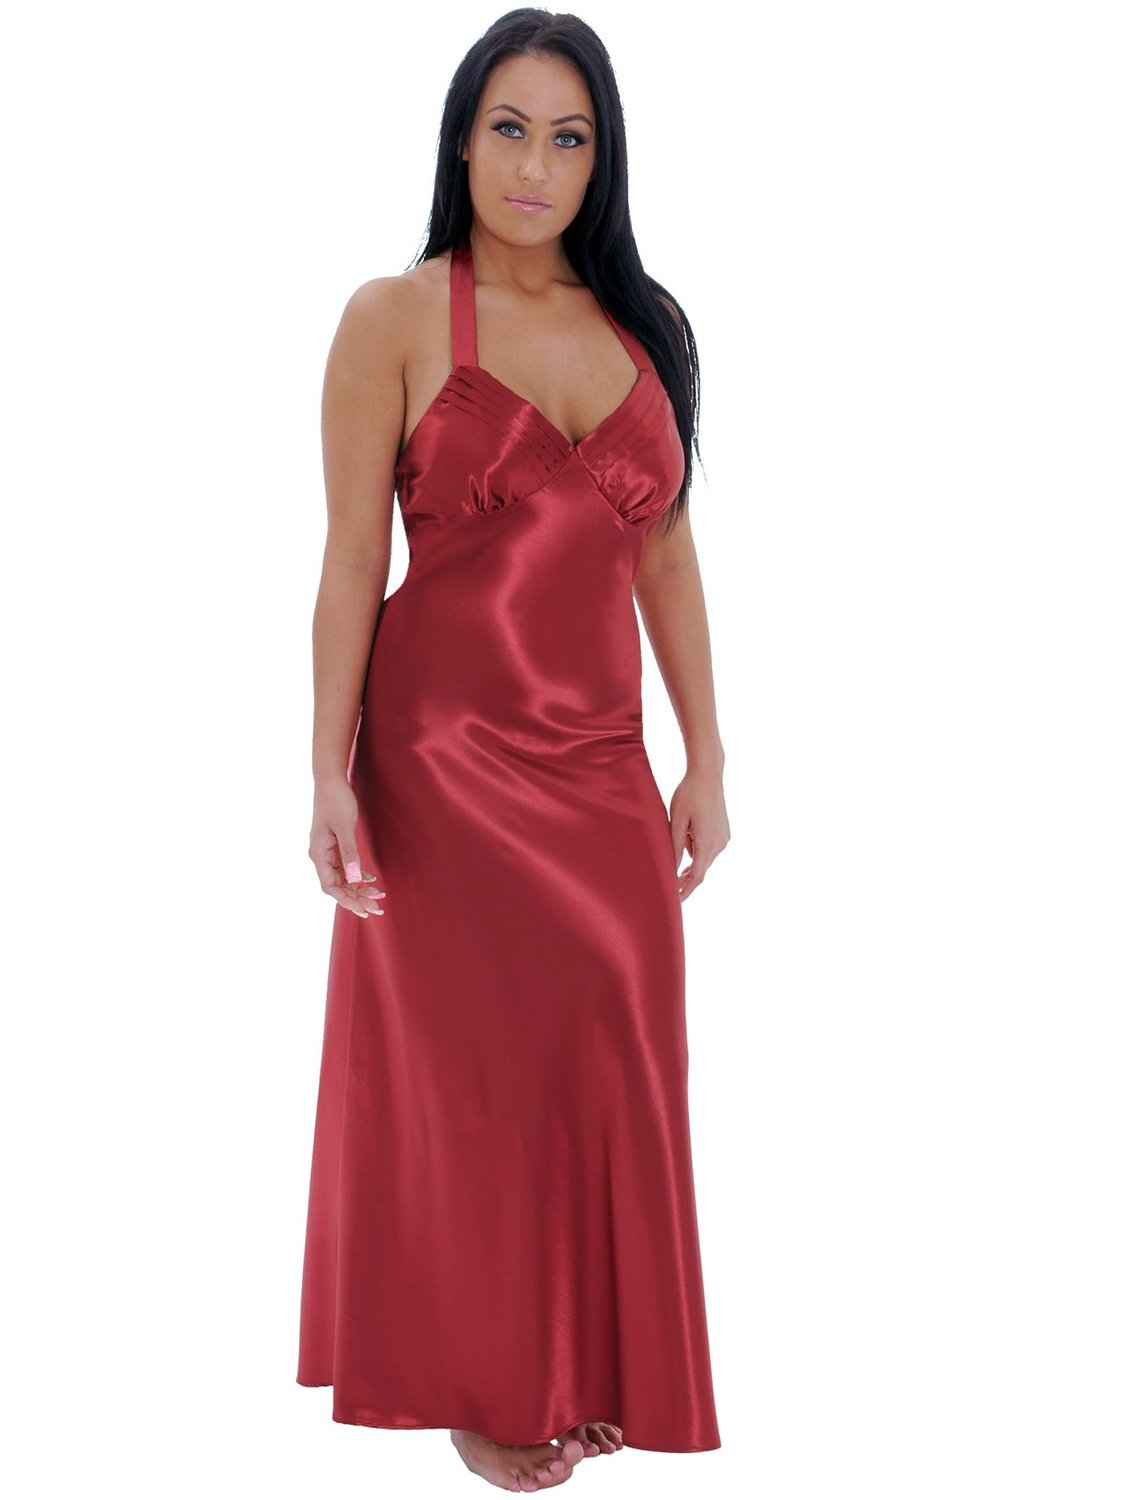 sexy night dress jpg 1500x1000